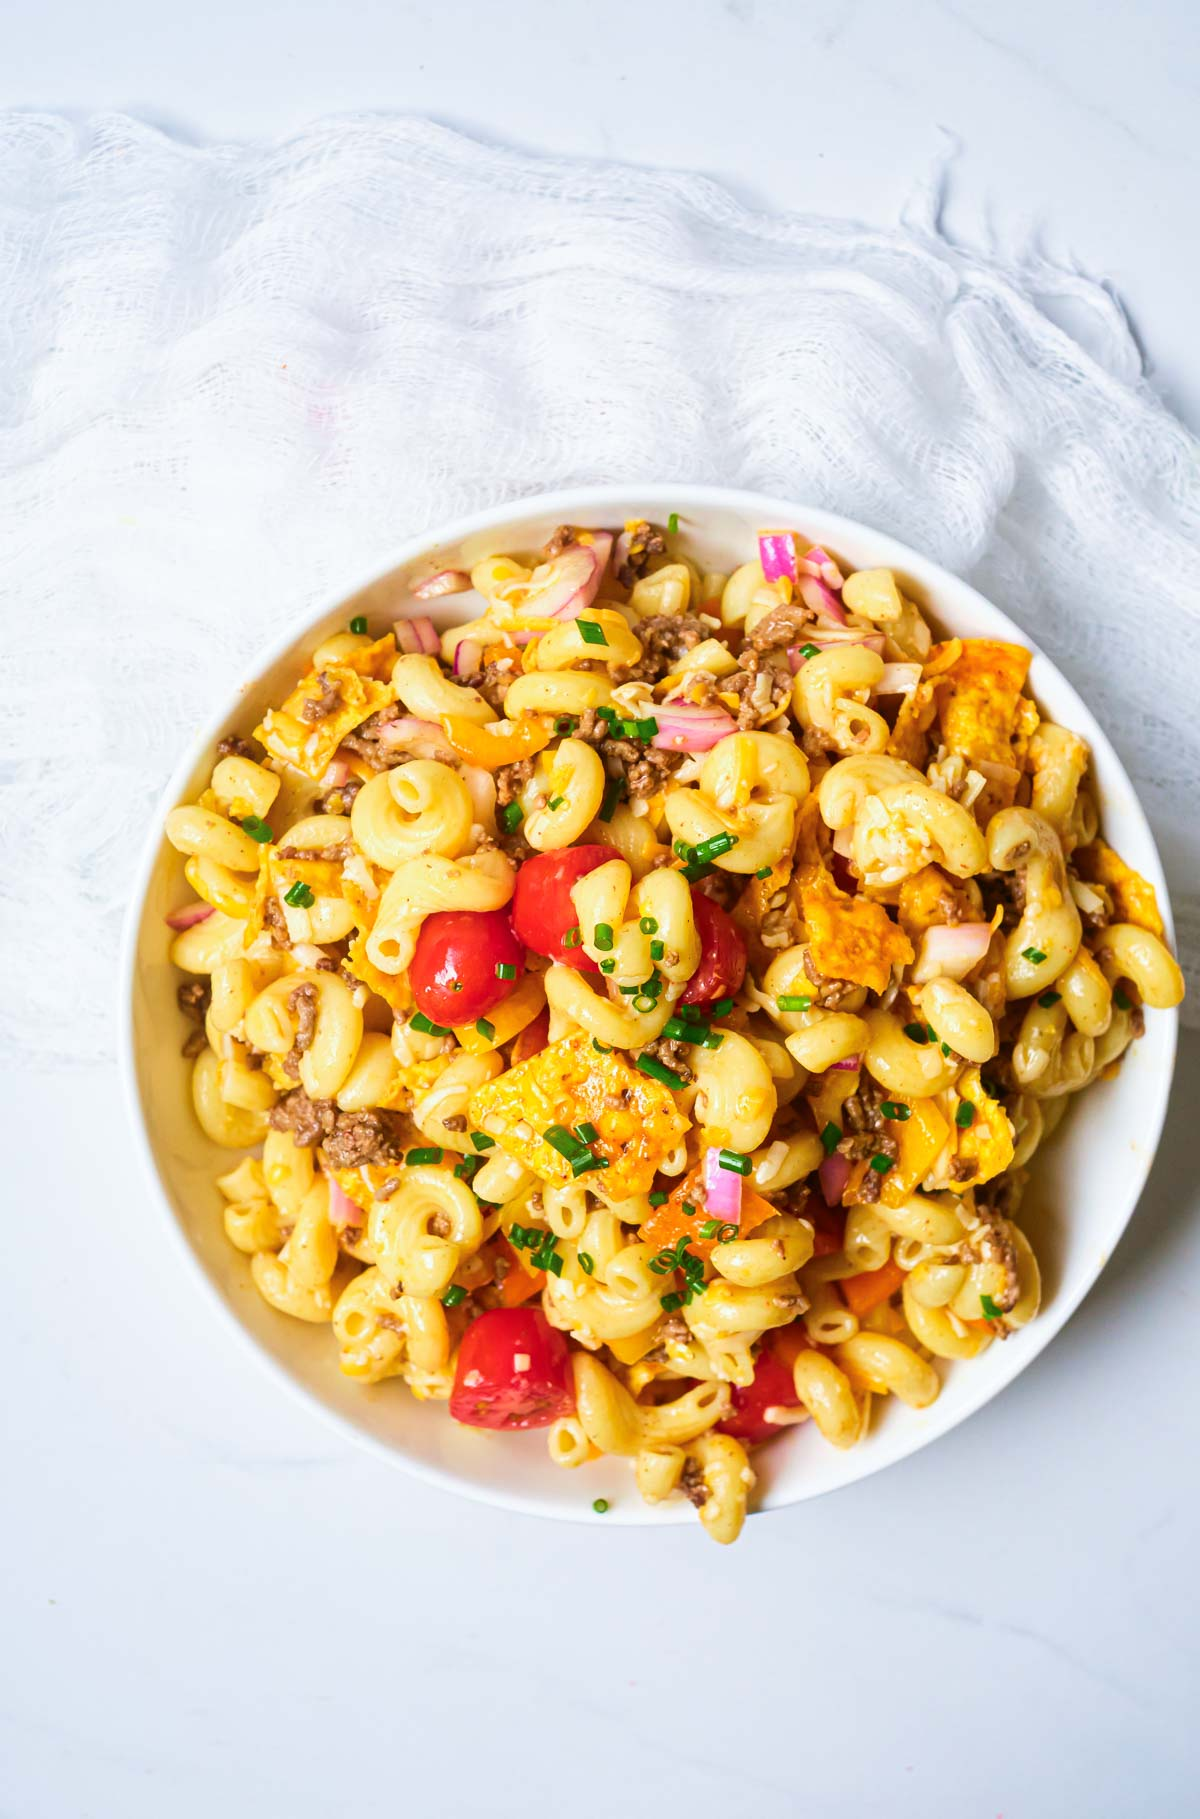 the finished taco pasta salad recipe ready to be served